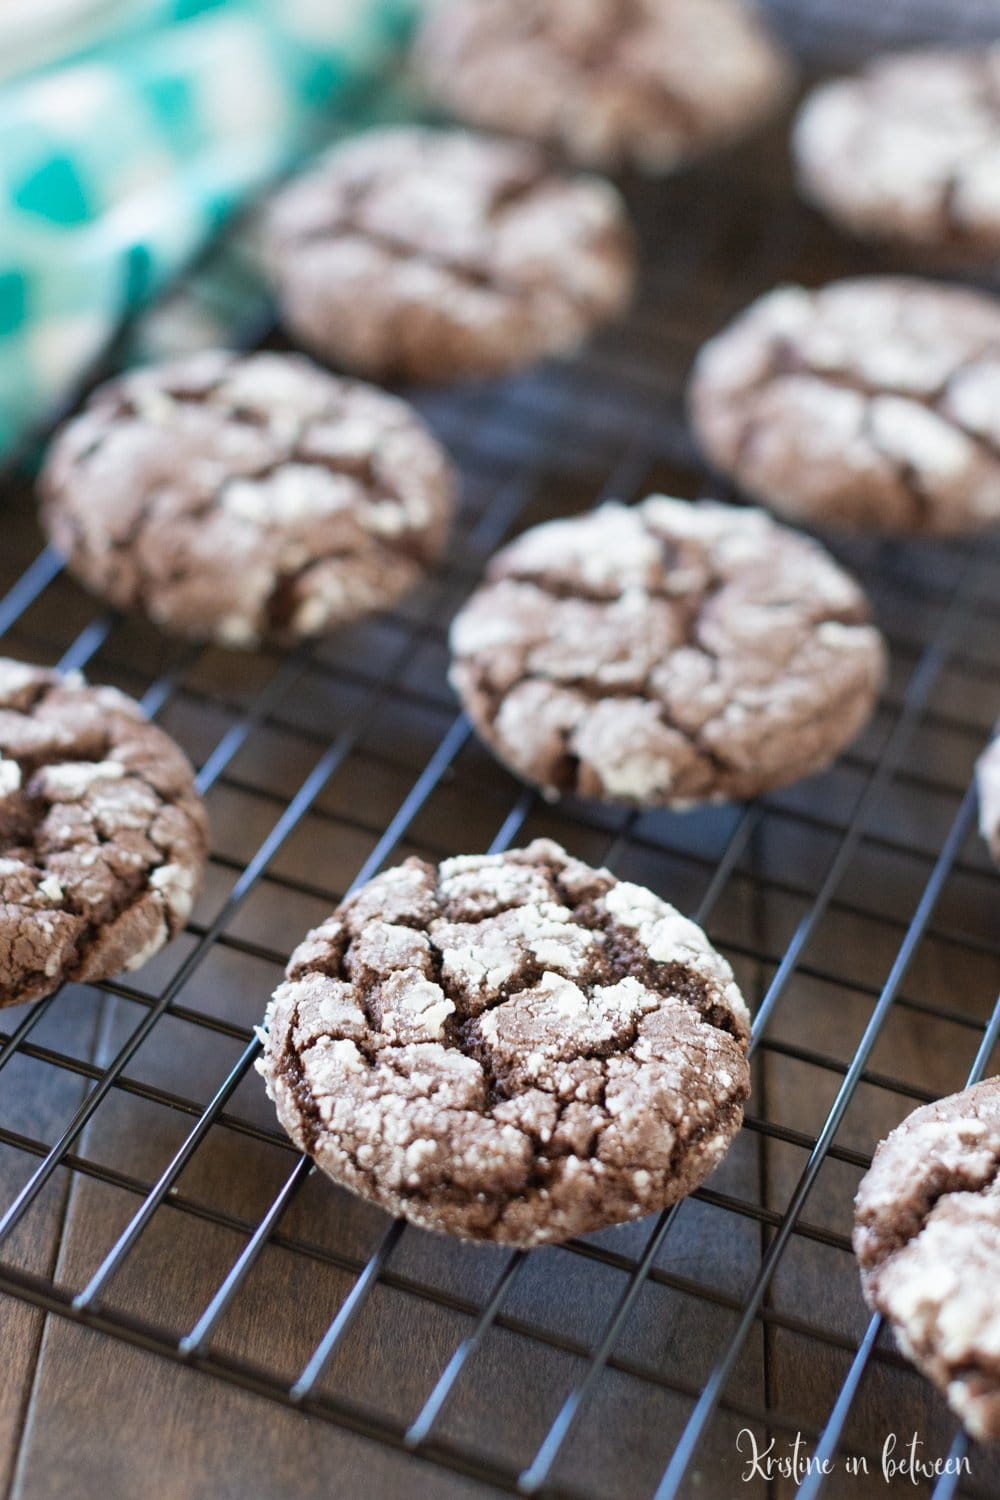 You'll love these super easy one-bowl chocolate crinkle cookies! They're easy to make and are absolutely delicious!